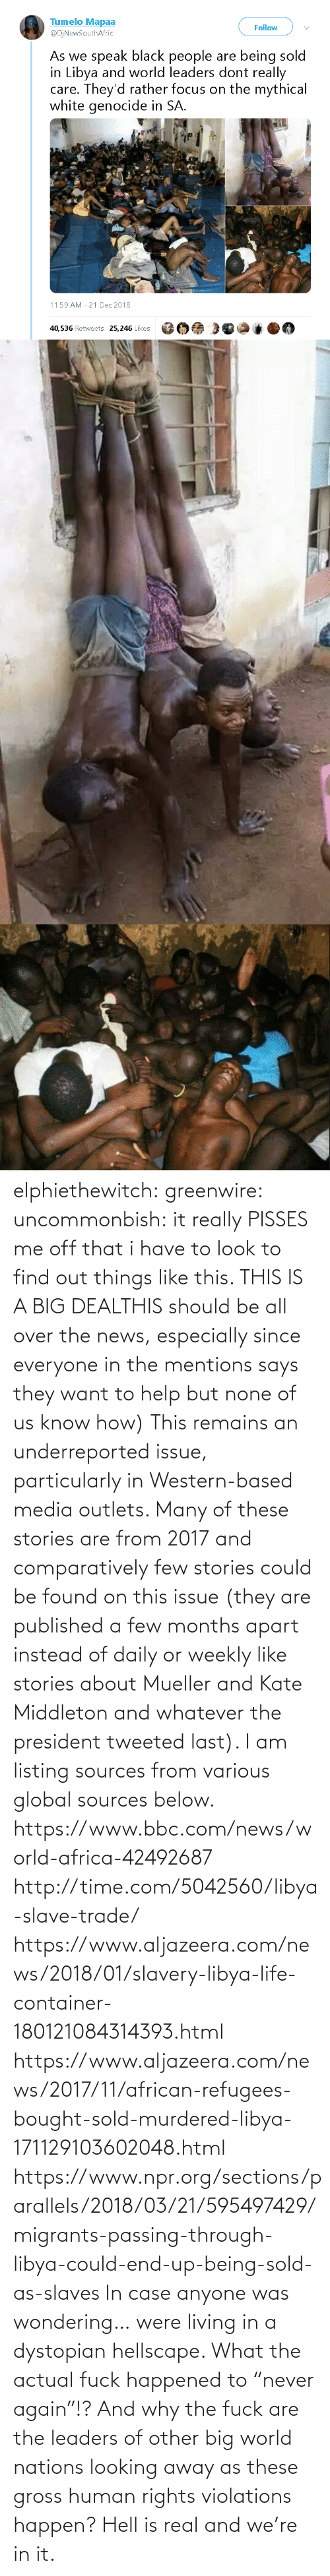 "Know How: elphiethewitch: greenwire:  uncommonbish:  it really PISSES me off that i have to look to find out things like this. THIS IS A BIG DEALTHIS should be all over the news, especially since everyone in the mentions says they want to help but none of us know how)  This remains an underreported issue, particularly in Western-based media outlets. Many of these stories are from 2017 and comparatively few stories could be found on this issue (they are published a few months apart instead of daily or weekly like stories about Mueller and Kate Middleton and whatever the president tweeted last). I am listing sources from various global sources below.  https://www.bbc.com/news/world-africa-42492687 http://time.com/5042560/libya-slave-trade/ https://www.aljazeera.com/news/2018/01/slavery-libya-life-container-180121084314393.html https://www.aljazeera.com/news/2017/11/african-refugees-bought-sold-murdered-libya-171129103602048.html https://www.npr.org/sections/parallels/2018/03/21/595497429/migrants-passing-through-libya-could-end-up-being-sold-as-slaves   In case anyone was wondering… were living in a dystopian hellscape.  What the actual fuck happened to ""never again""!? And why the fuck are the leaders of other big world nations looking away as these gross human rights violations happen?  Hell is real and we're in it."